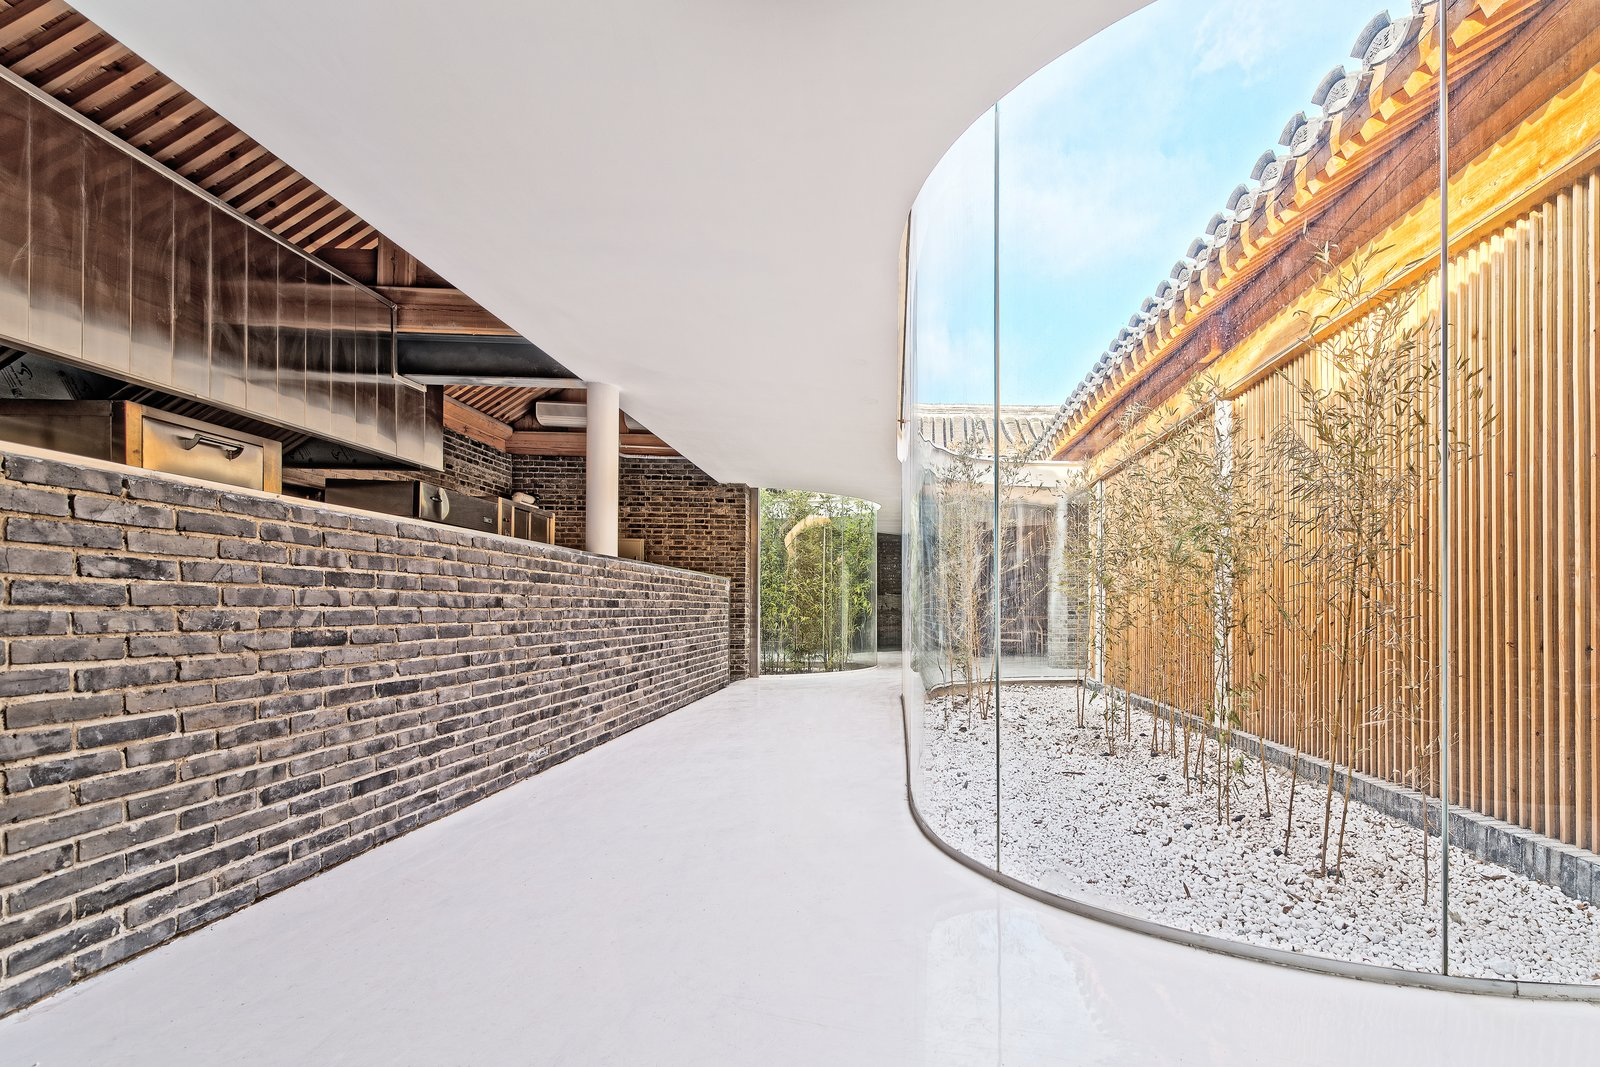 To ensure modern temperature control, the building had to be enclosed. The architects installed transparent glass walls to create a constant visual connection to the building's historic features. An Historic Beijing Structure Gets a Modern Makeover - Photo 3 of 7